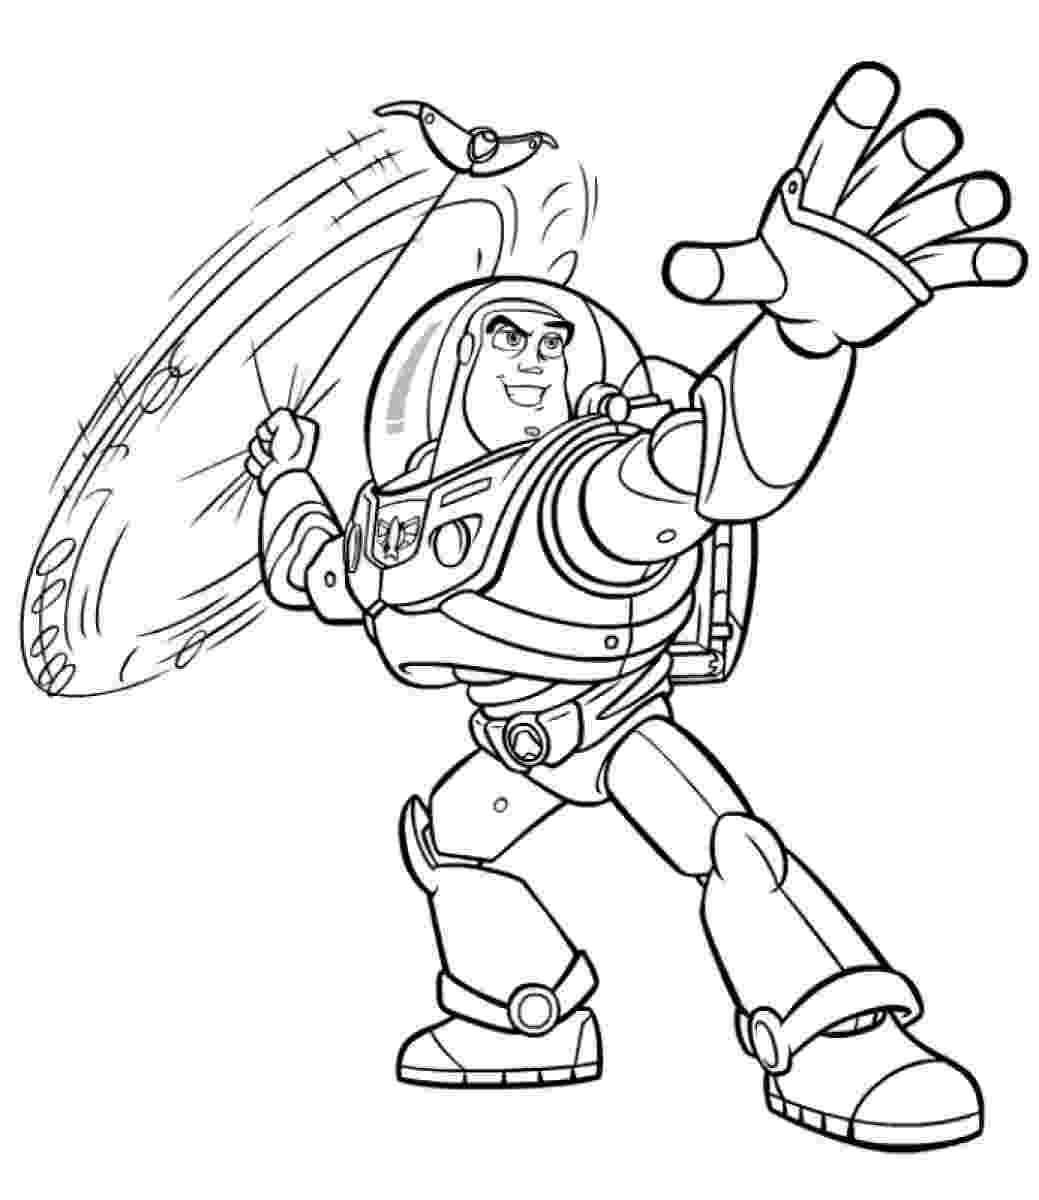 buzz lightyear coloring pages free buzz lightyear coloring pages getcoloringpagescom buzz coloring free pages lightyear